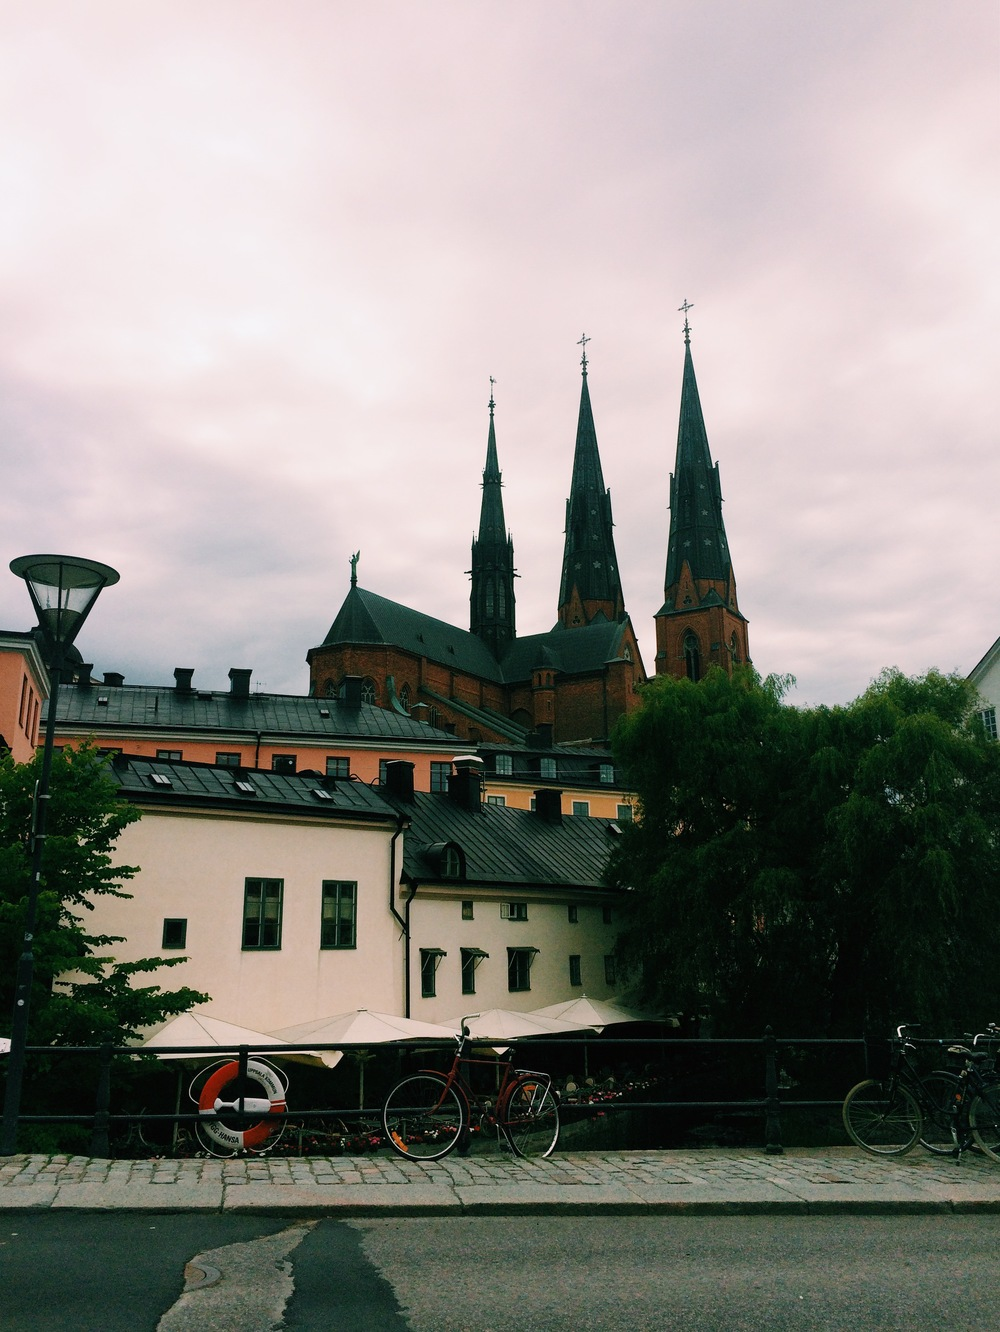 Uppsala's Domkyrka Cathedral and the Fyris River as seen from Östra Ågatan